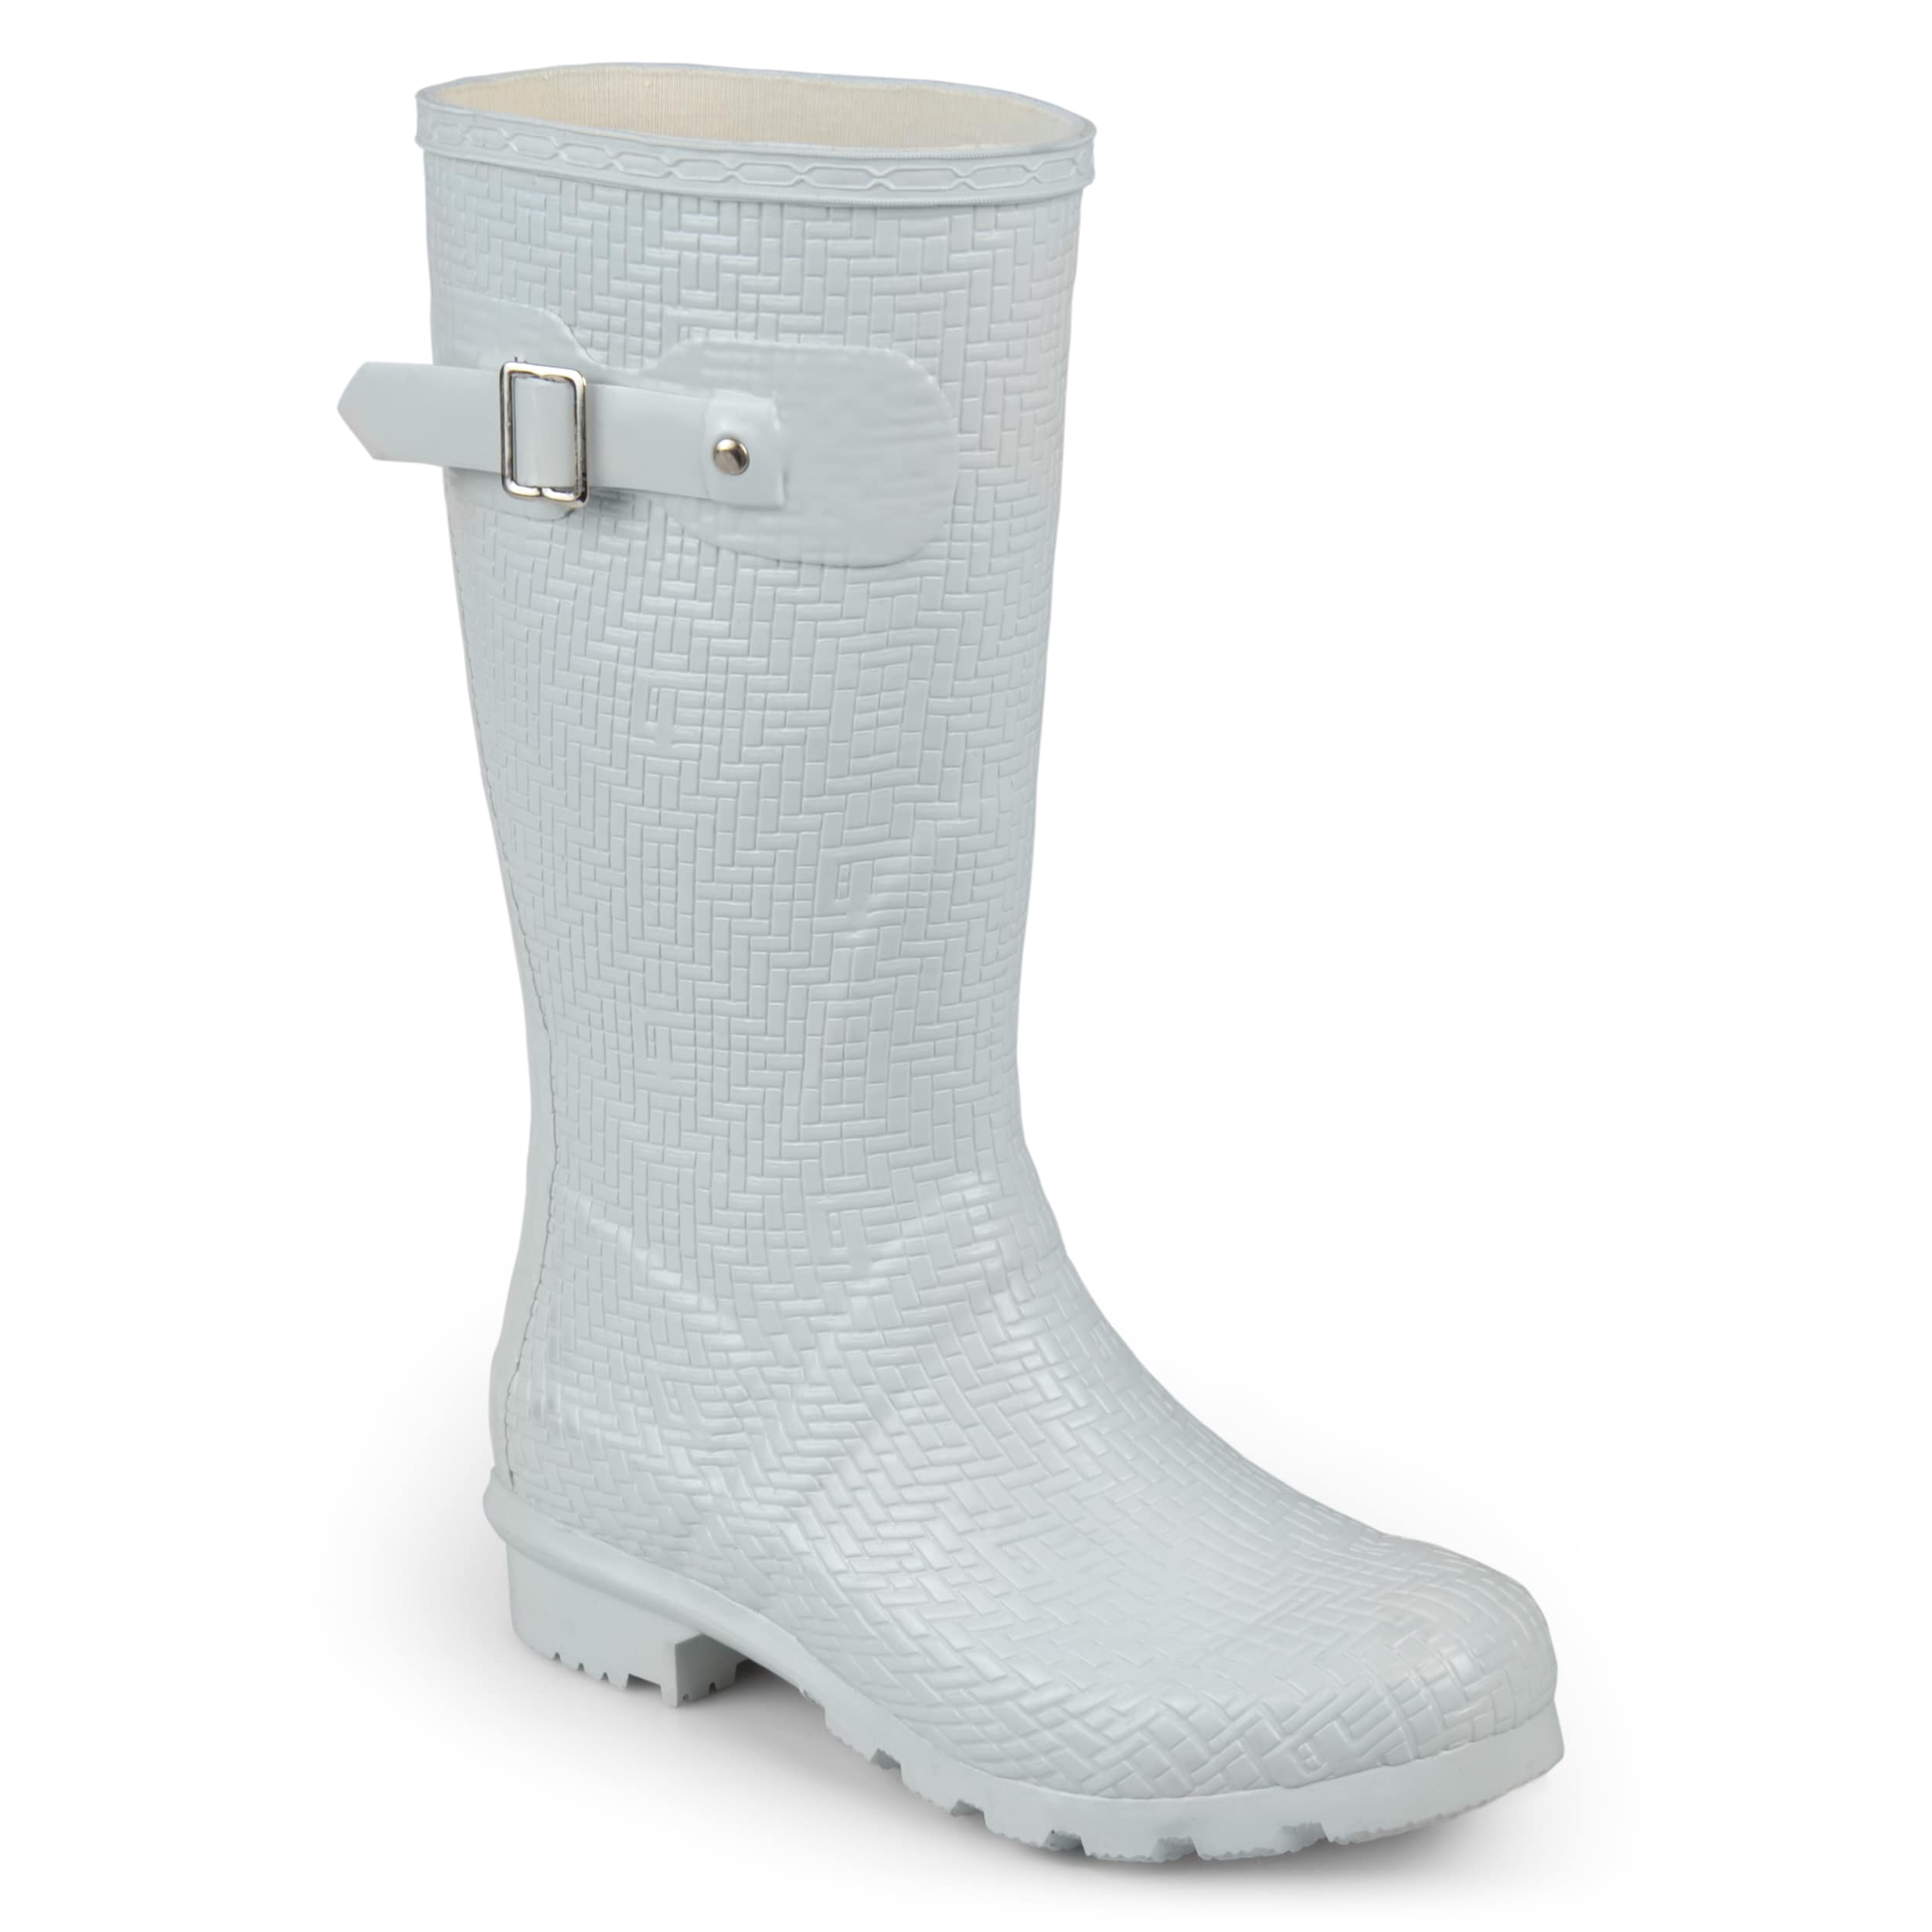 ccc97735176 Shop Journee Collection Women s  Drizl  Textured Rubber Basketweave  Mid-calf Rainboots - Free Shipping Today - Overstock - 17011784